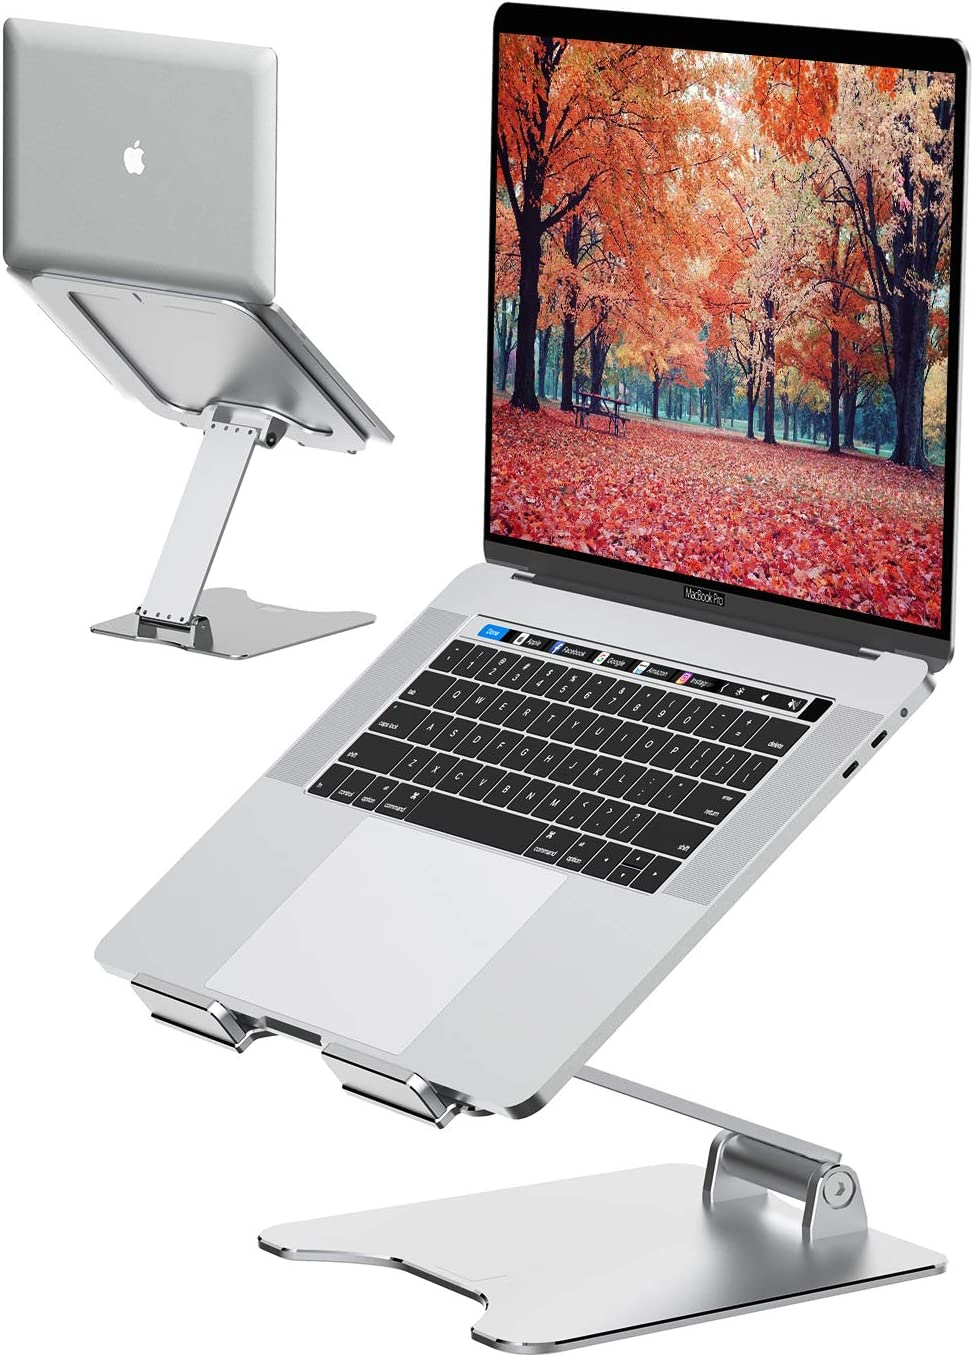 "Laptop Stand, VMEI Ergonomic Aluminum Cooling Stand Computer Stand,Adjustable Foldable Laptop Riser MacBook Stand Compatible with MacBook Air Pro, Dell XPS, Lenovo More 10-15.6"" Laptops- Silver"